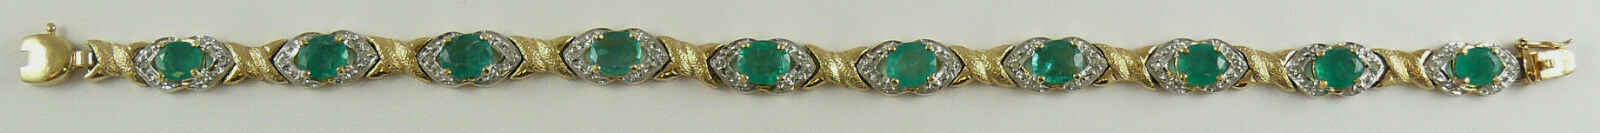 Emerald Bracelet 5.92ct  with Diamonds 0.05ct 14k Yellow gold 7